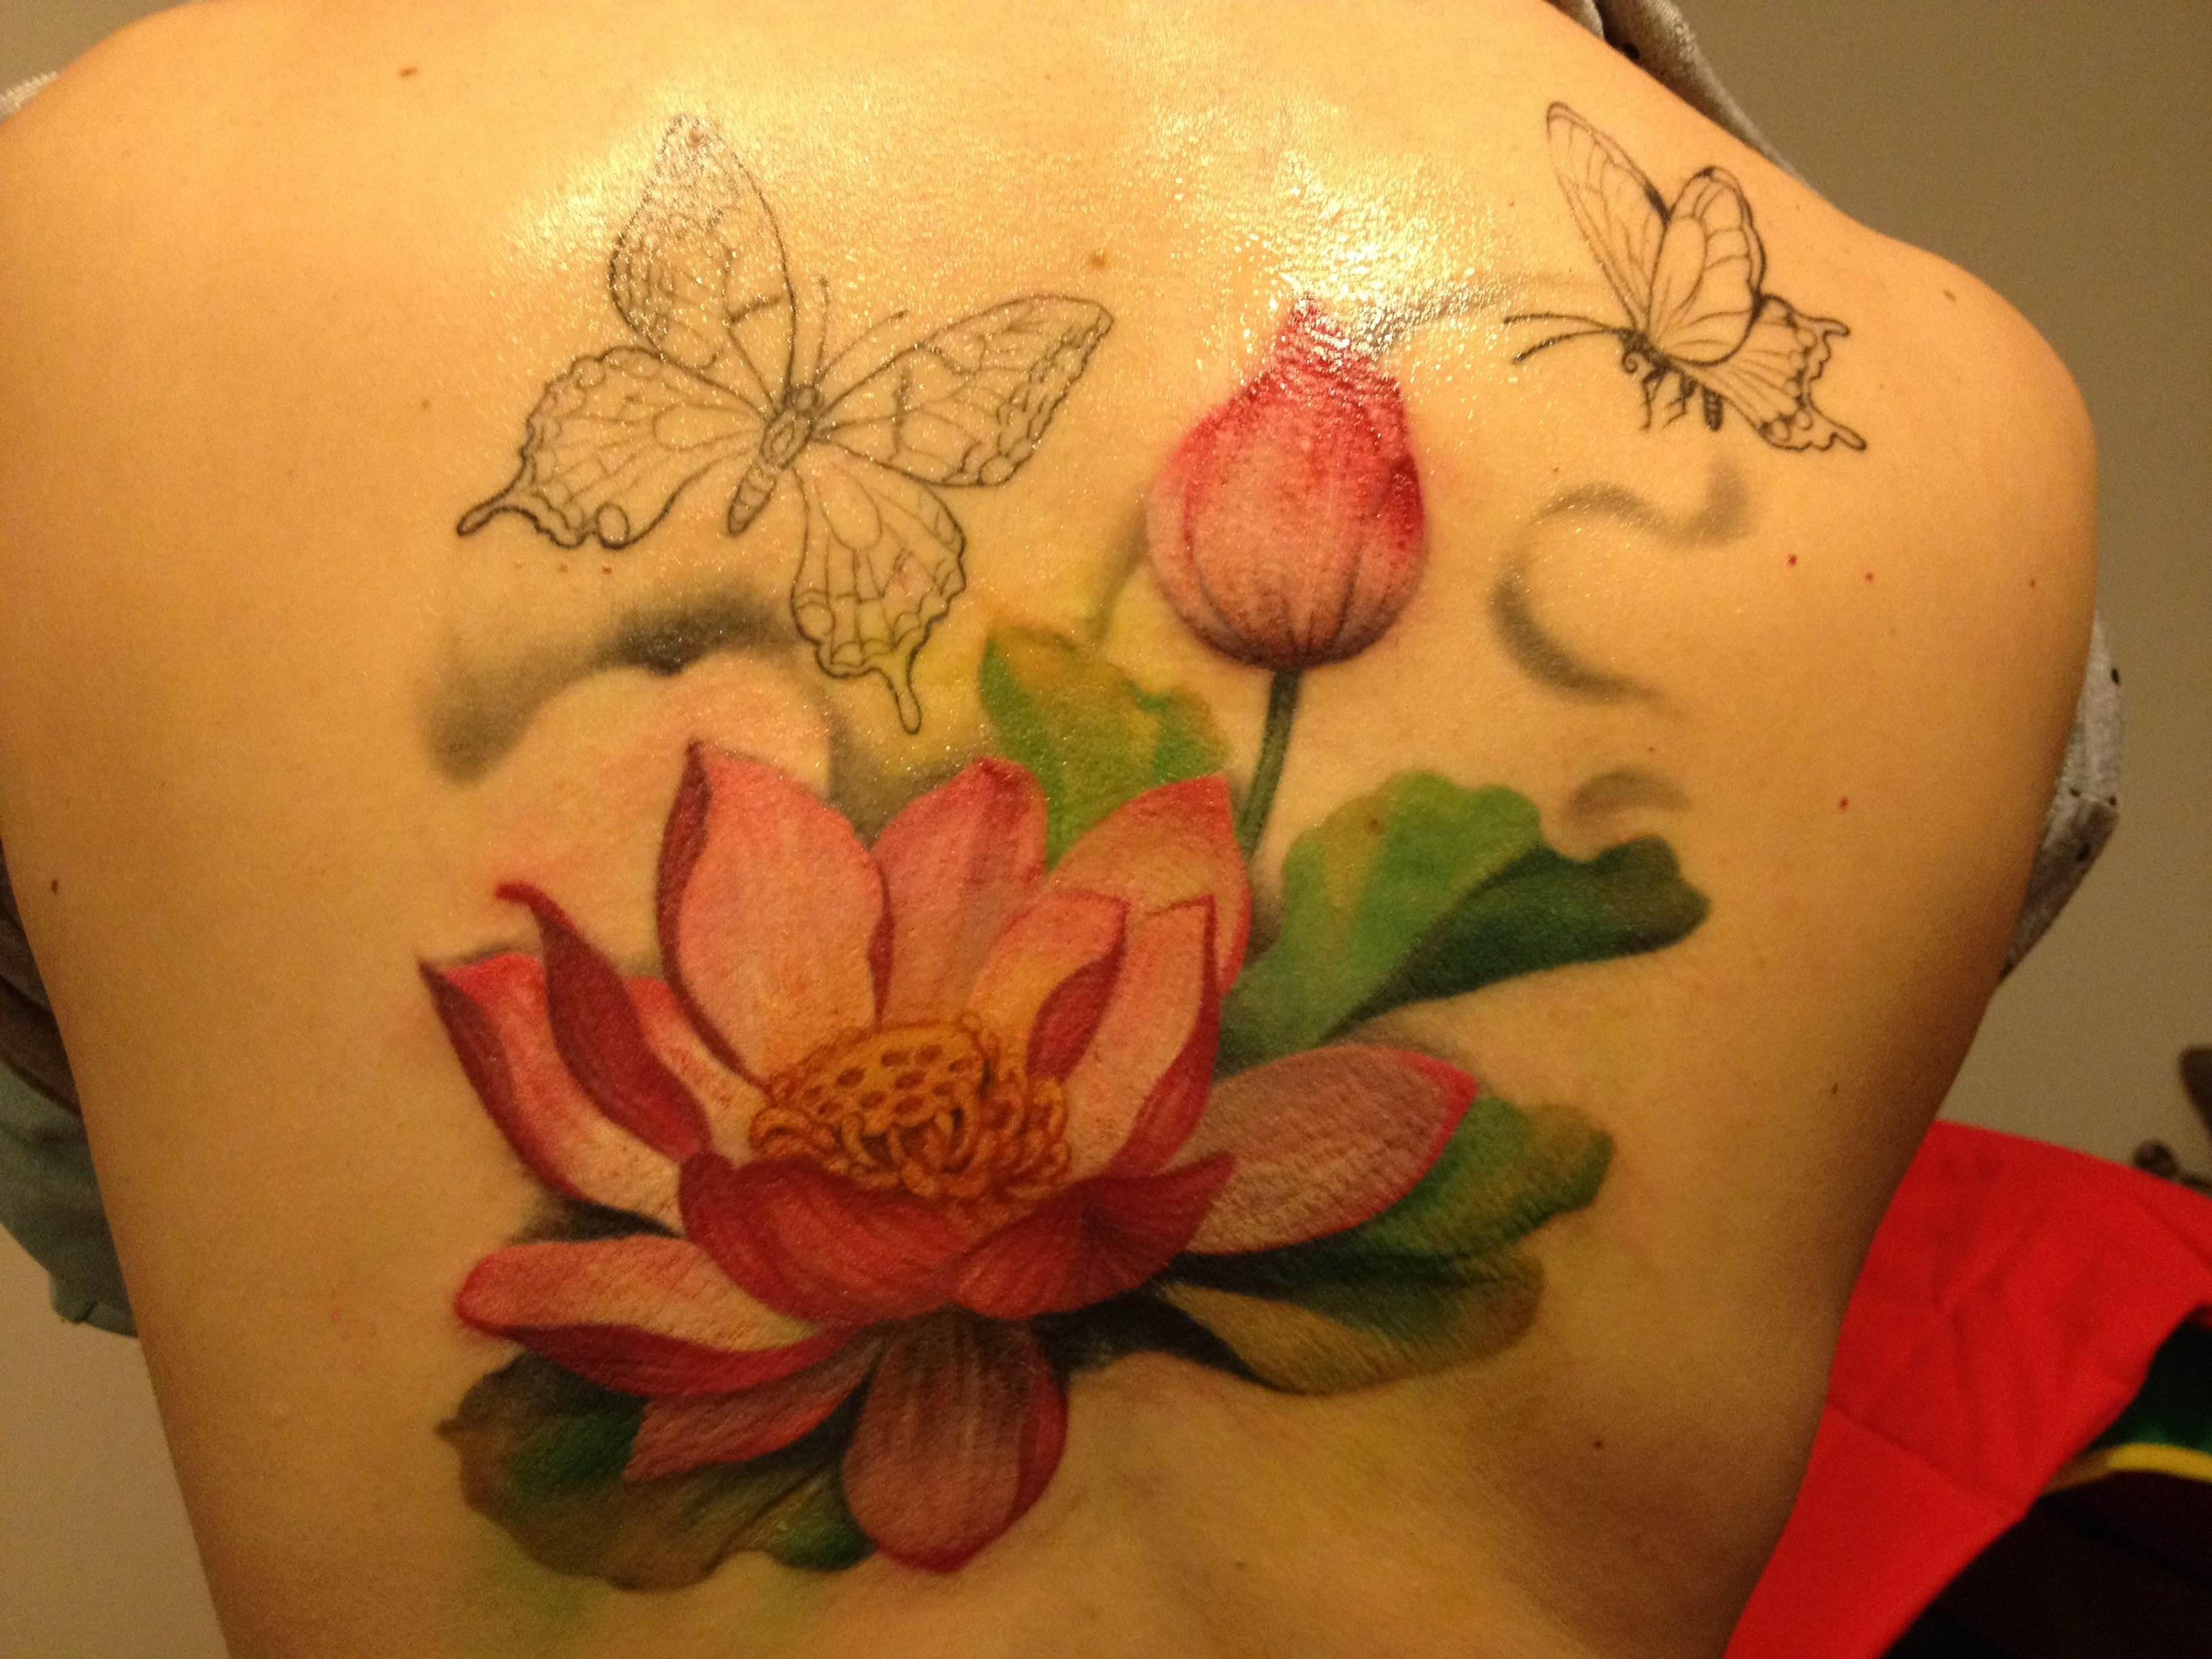 Lotus flower artsy pinterest lotus flower body art and tattoo lotus flower izmirmasajfo